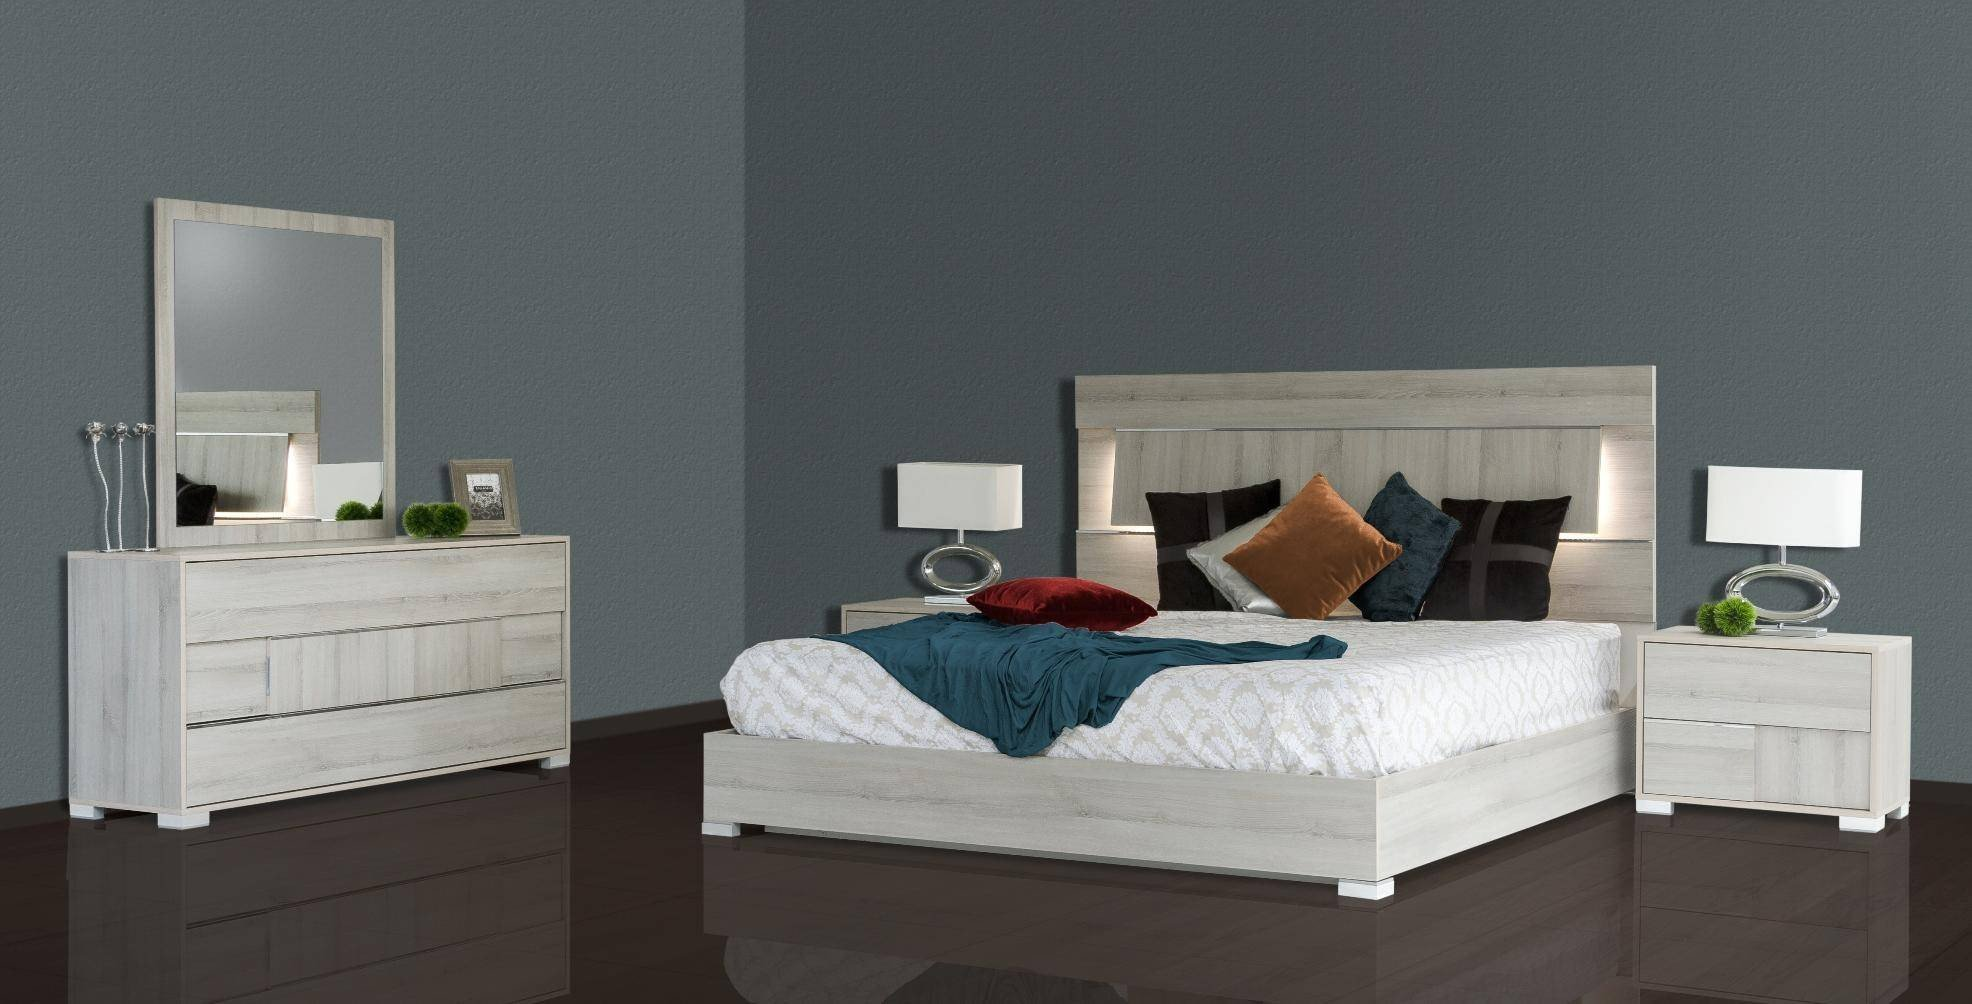 Lighted Headboard Bedroom Set Best Of Vig Modrest Ethan Grey Veneer Headboard W Led Queen Bedroom